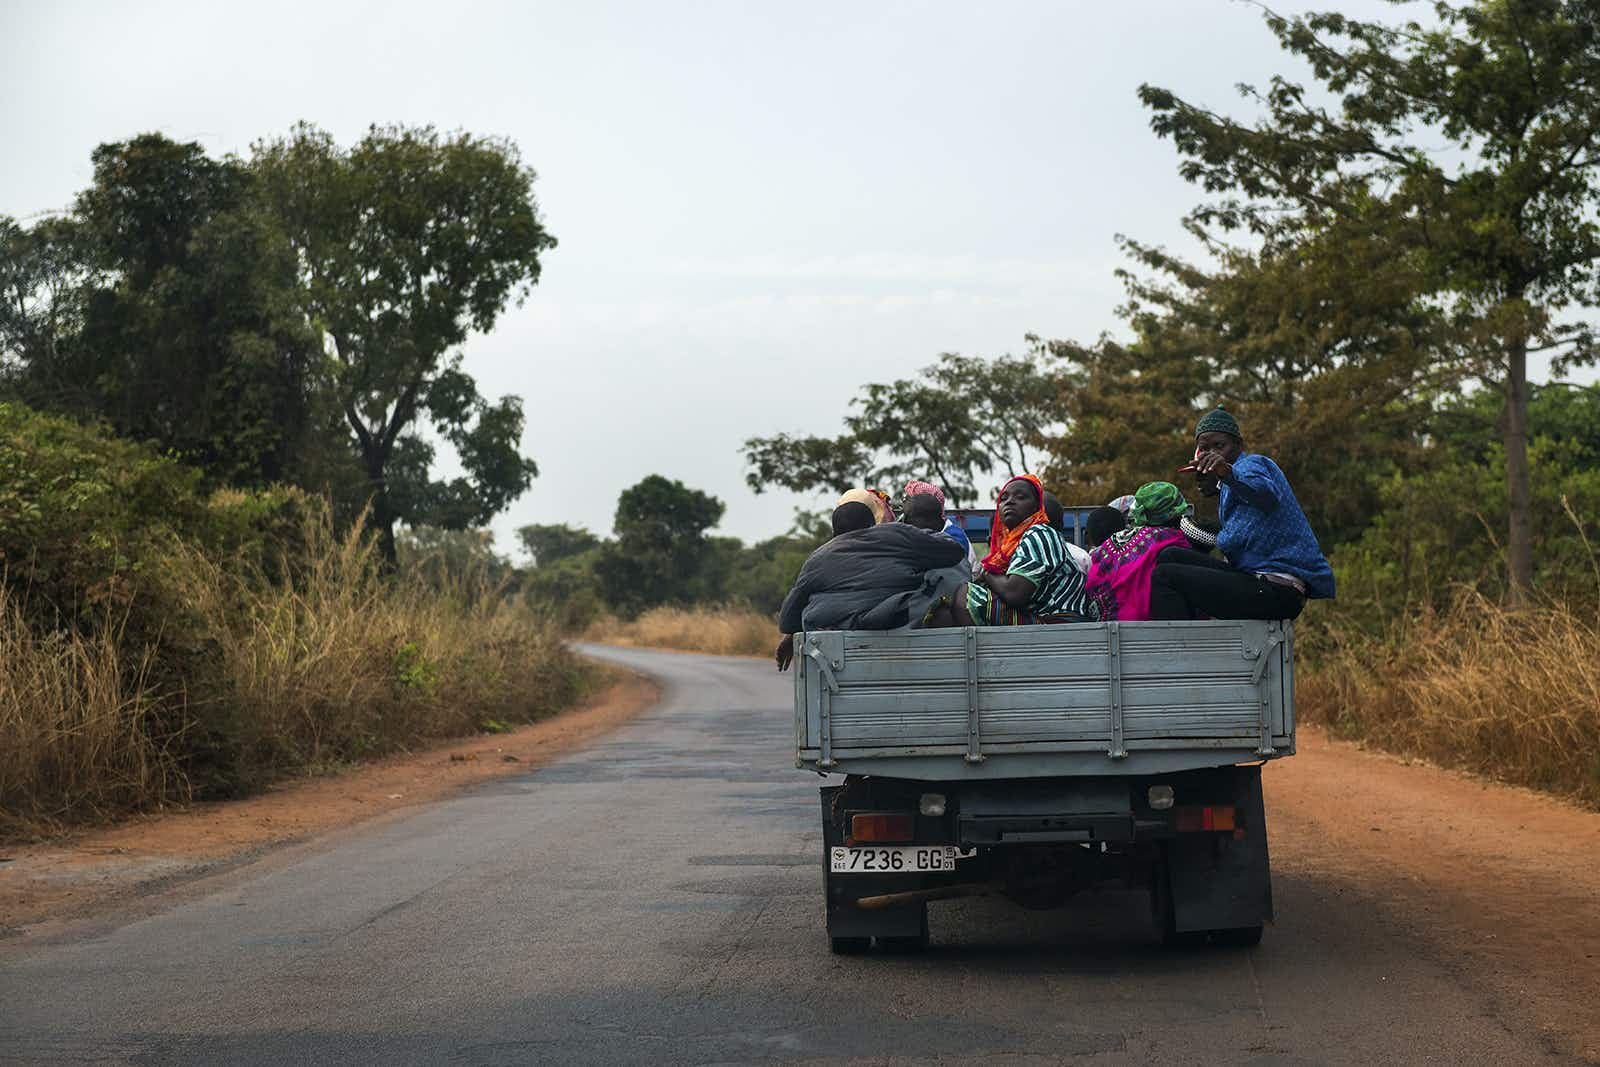 Passengers on a truck in Africa